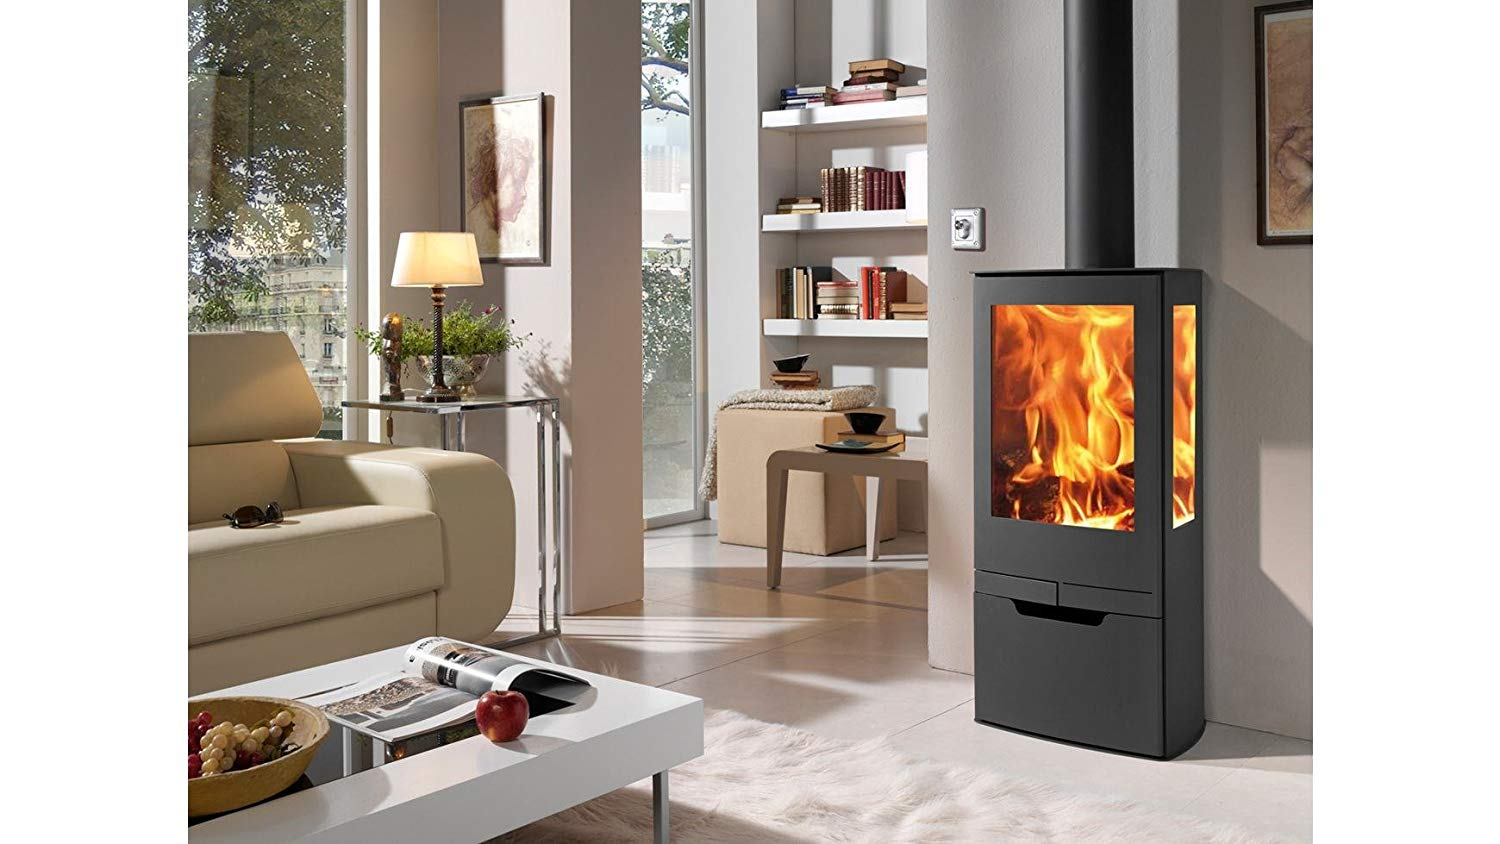 Image of Contemporary Three sided stove